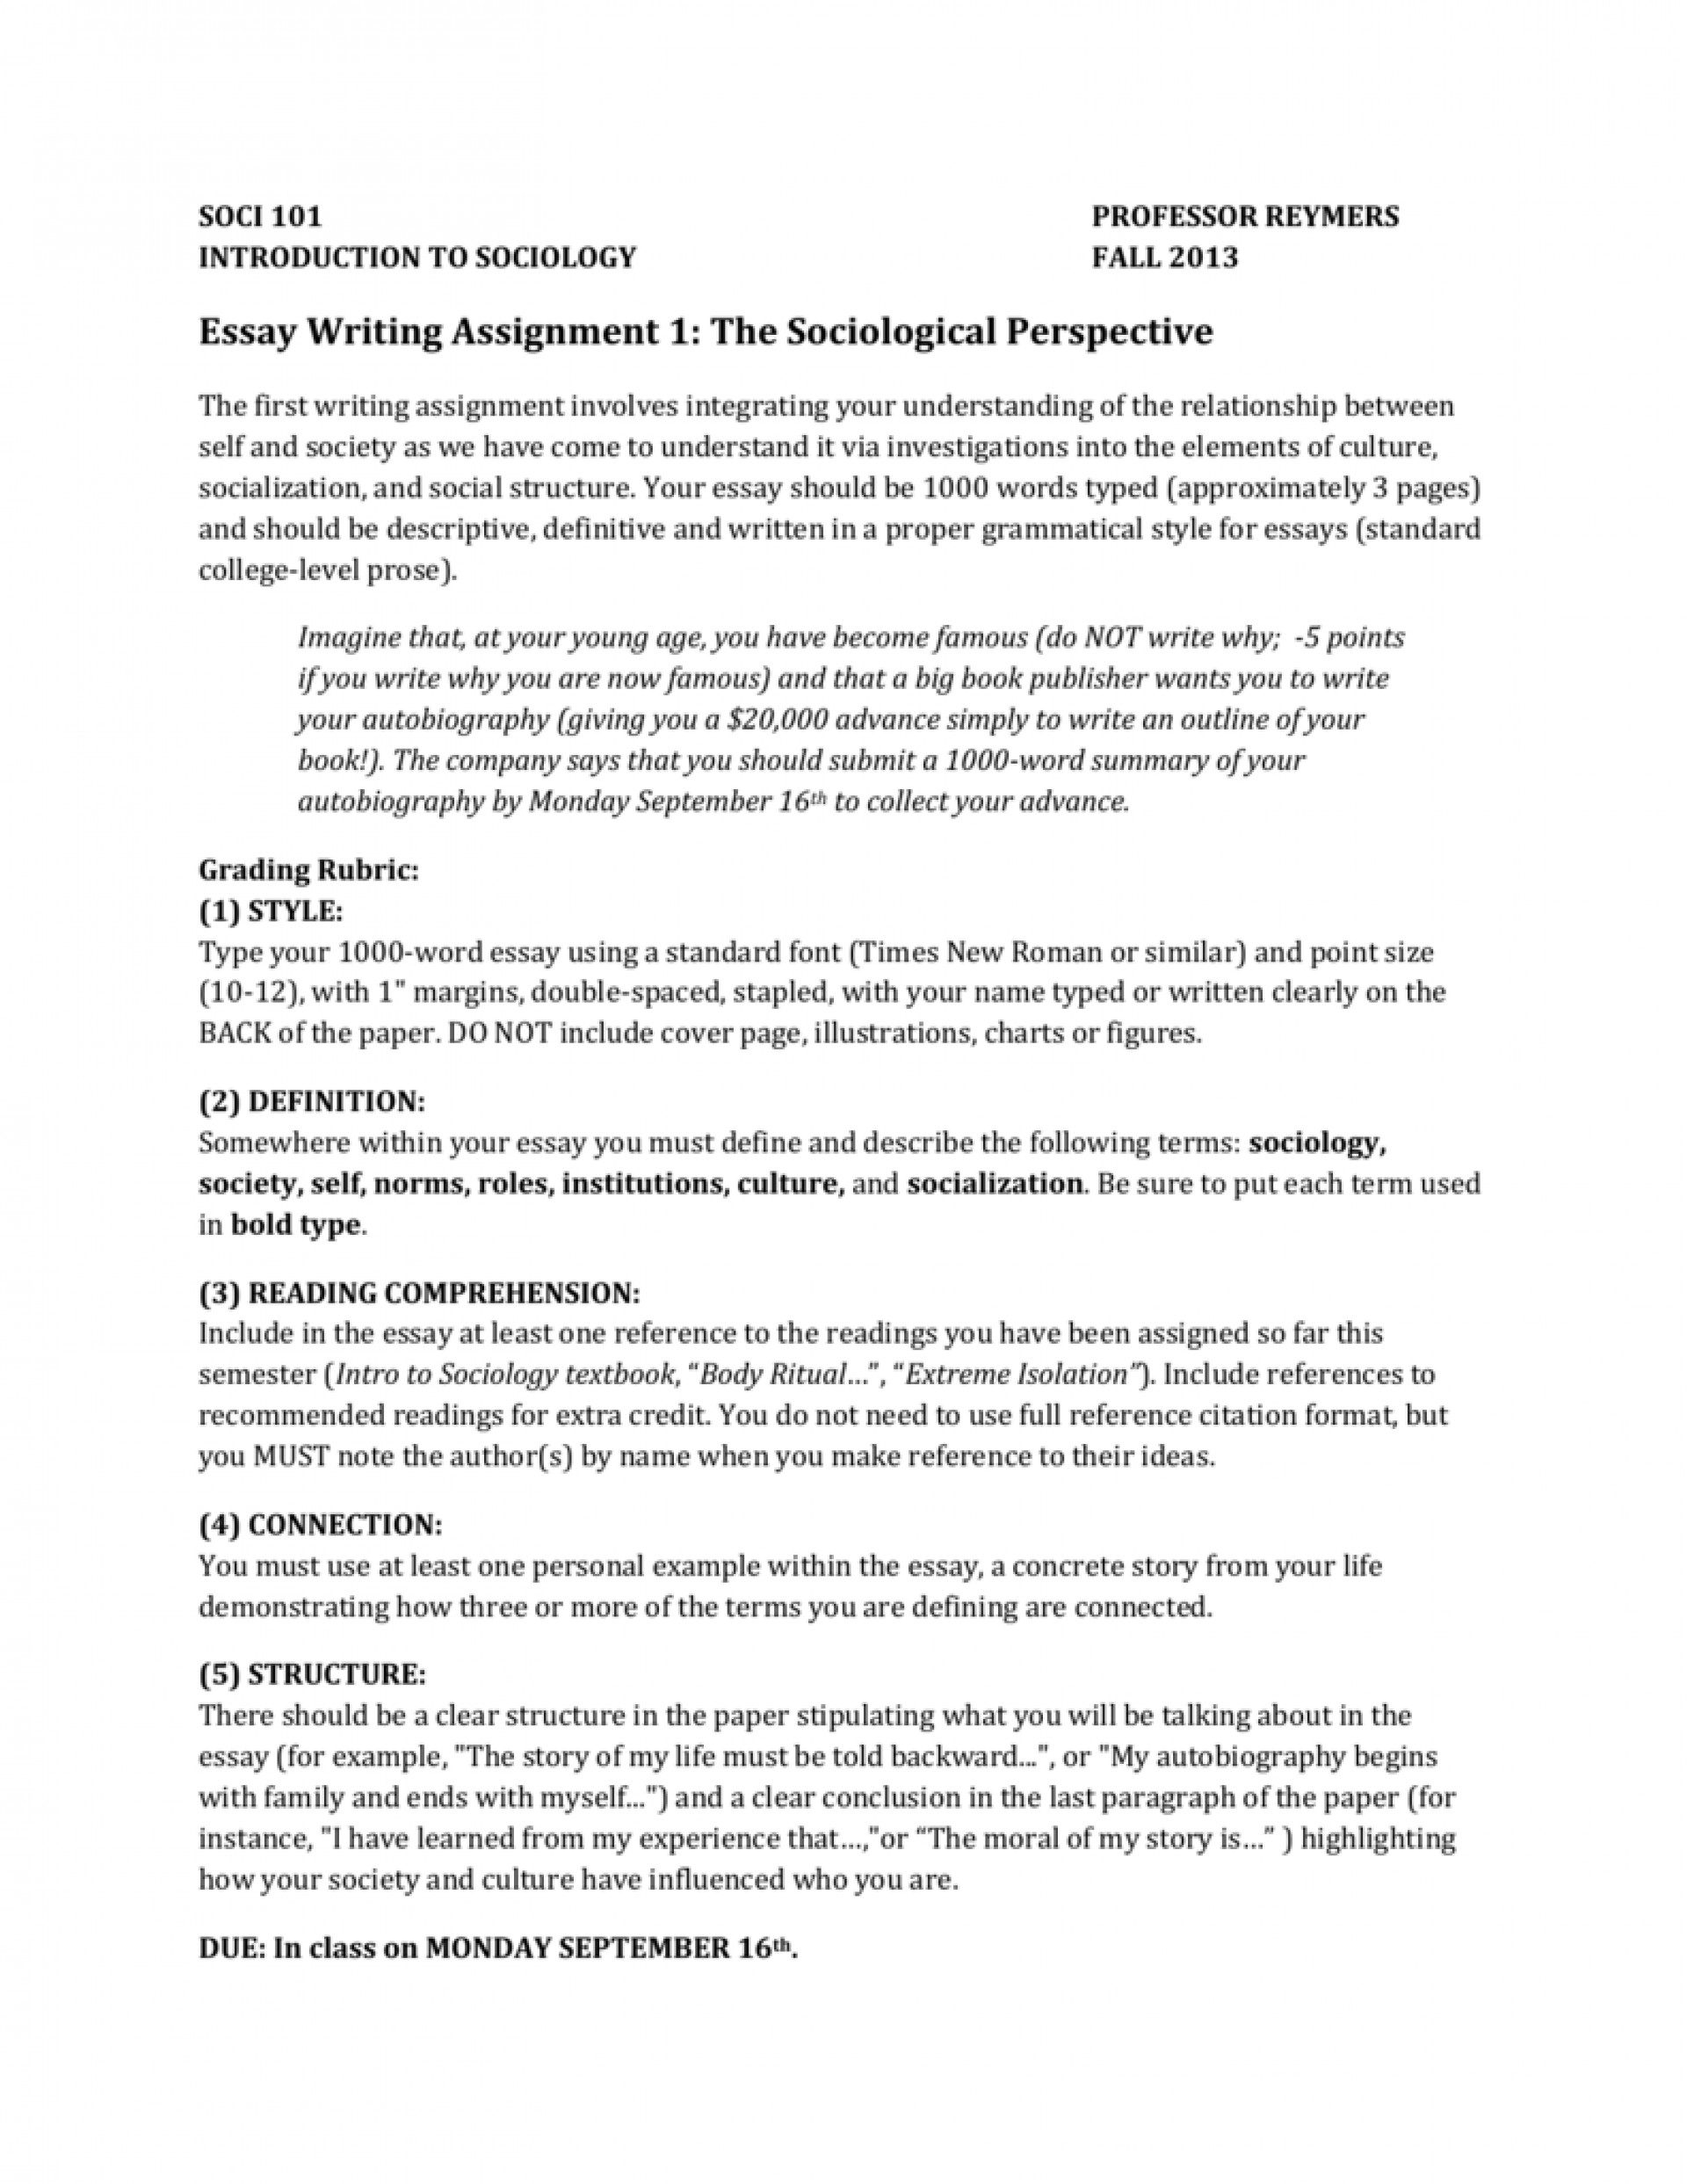 018 Essay Example Name Writing Assignment The Sociological Perspective Where To Put Your On Scholarship 008345038 1 An Apa Uk Write College Exceptional Mla Format Date Names In English Topic List 1920